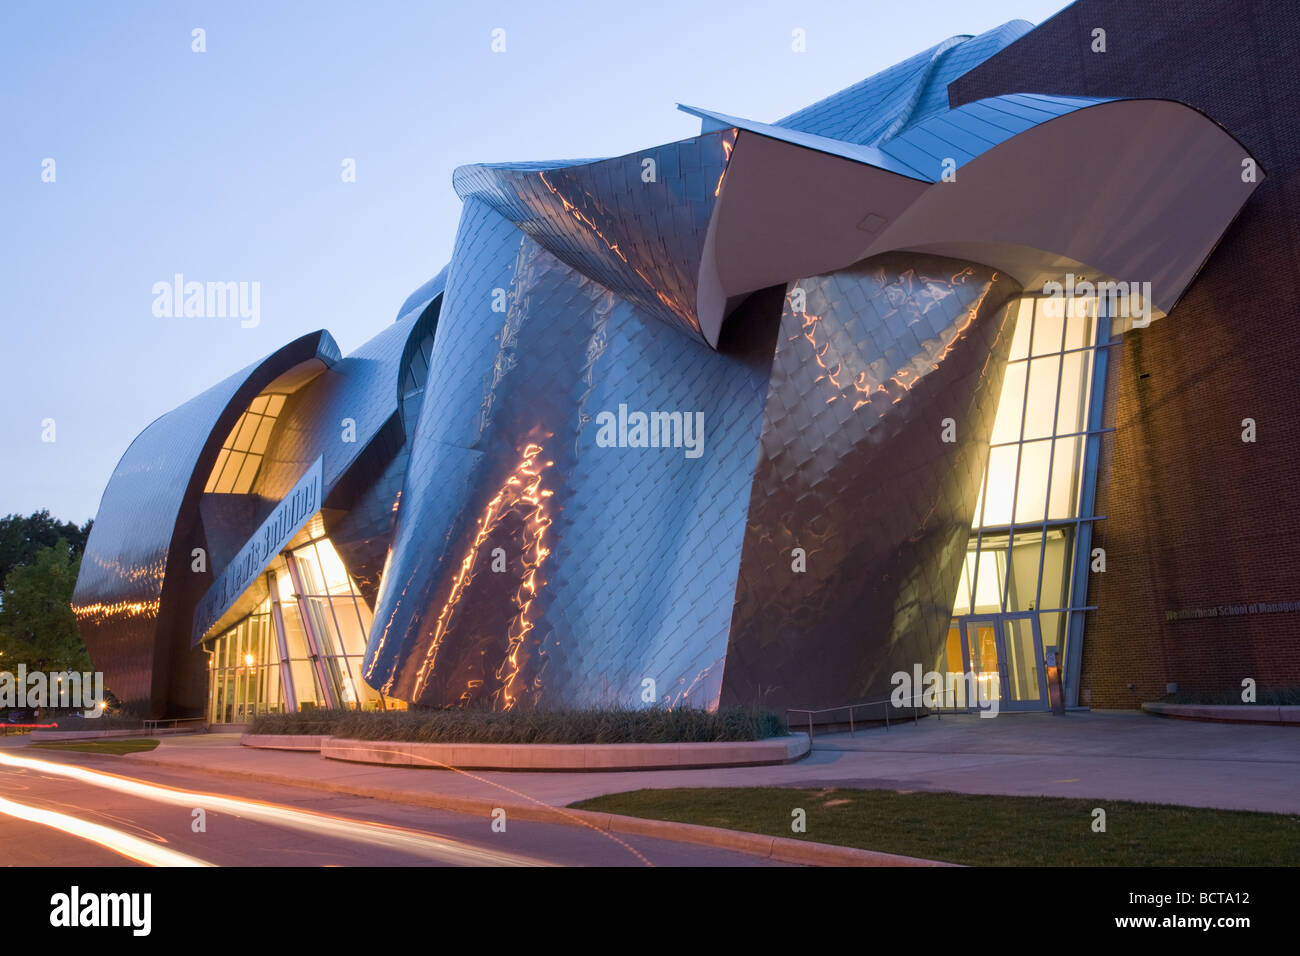 Peter B Lewis Building by Frank Gehry at Case Western Reserve U in Cleveland Ohio - Stock Image